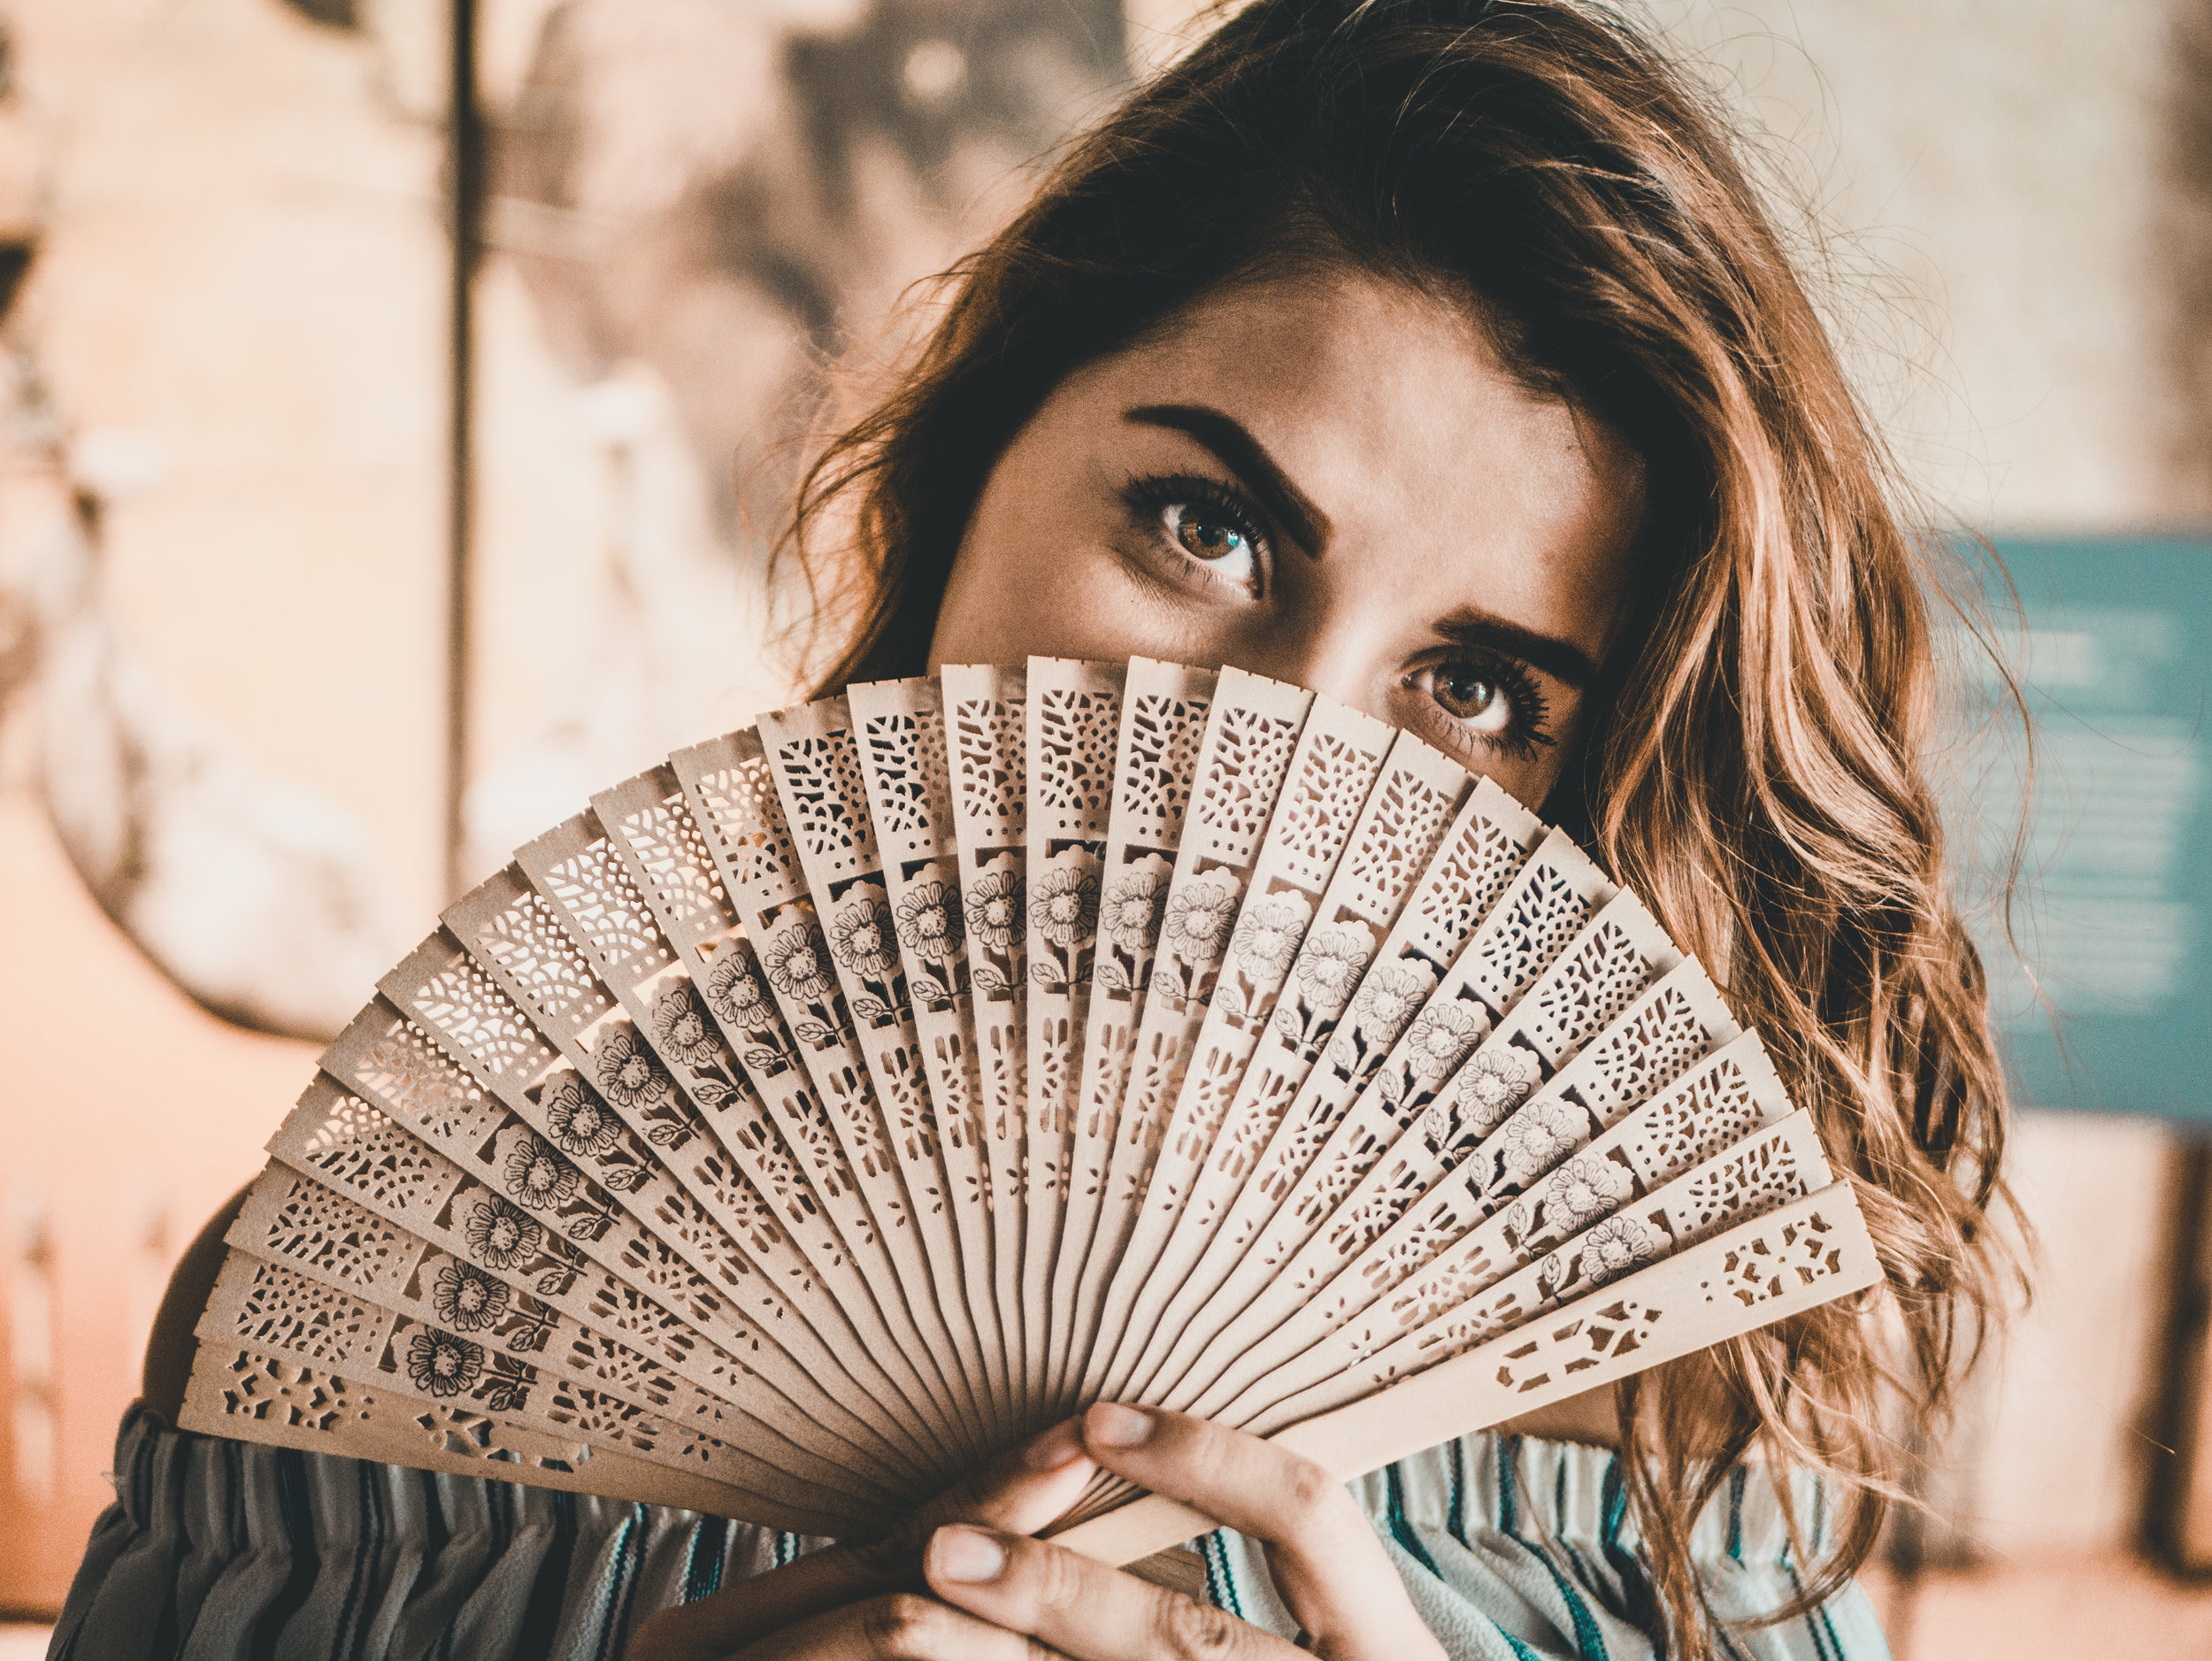 During peri-menopause or menopause using a fan can help manage hot flushes